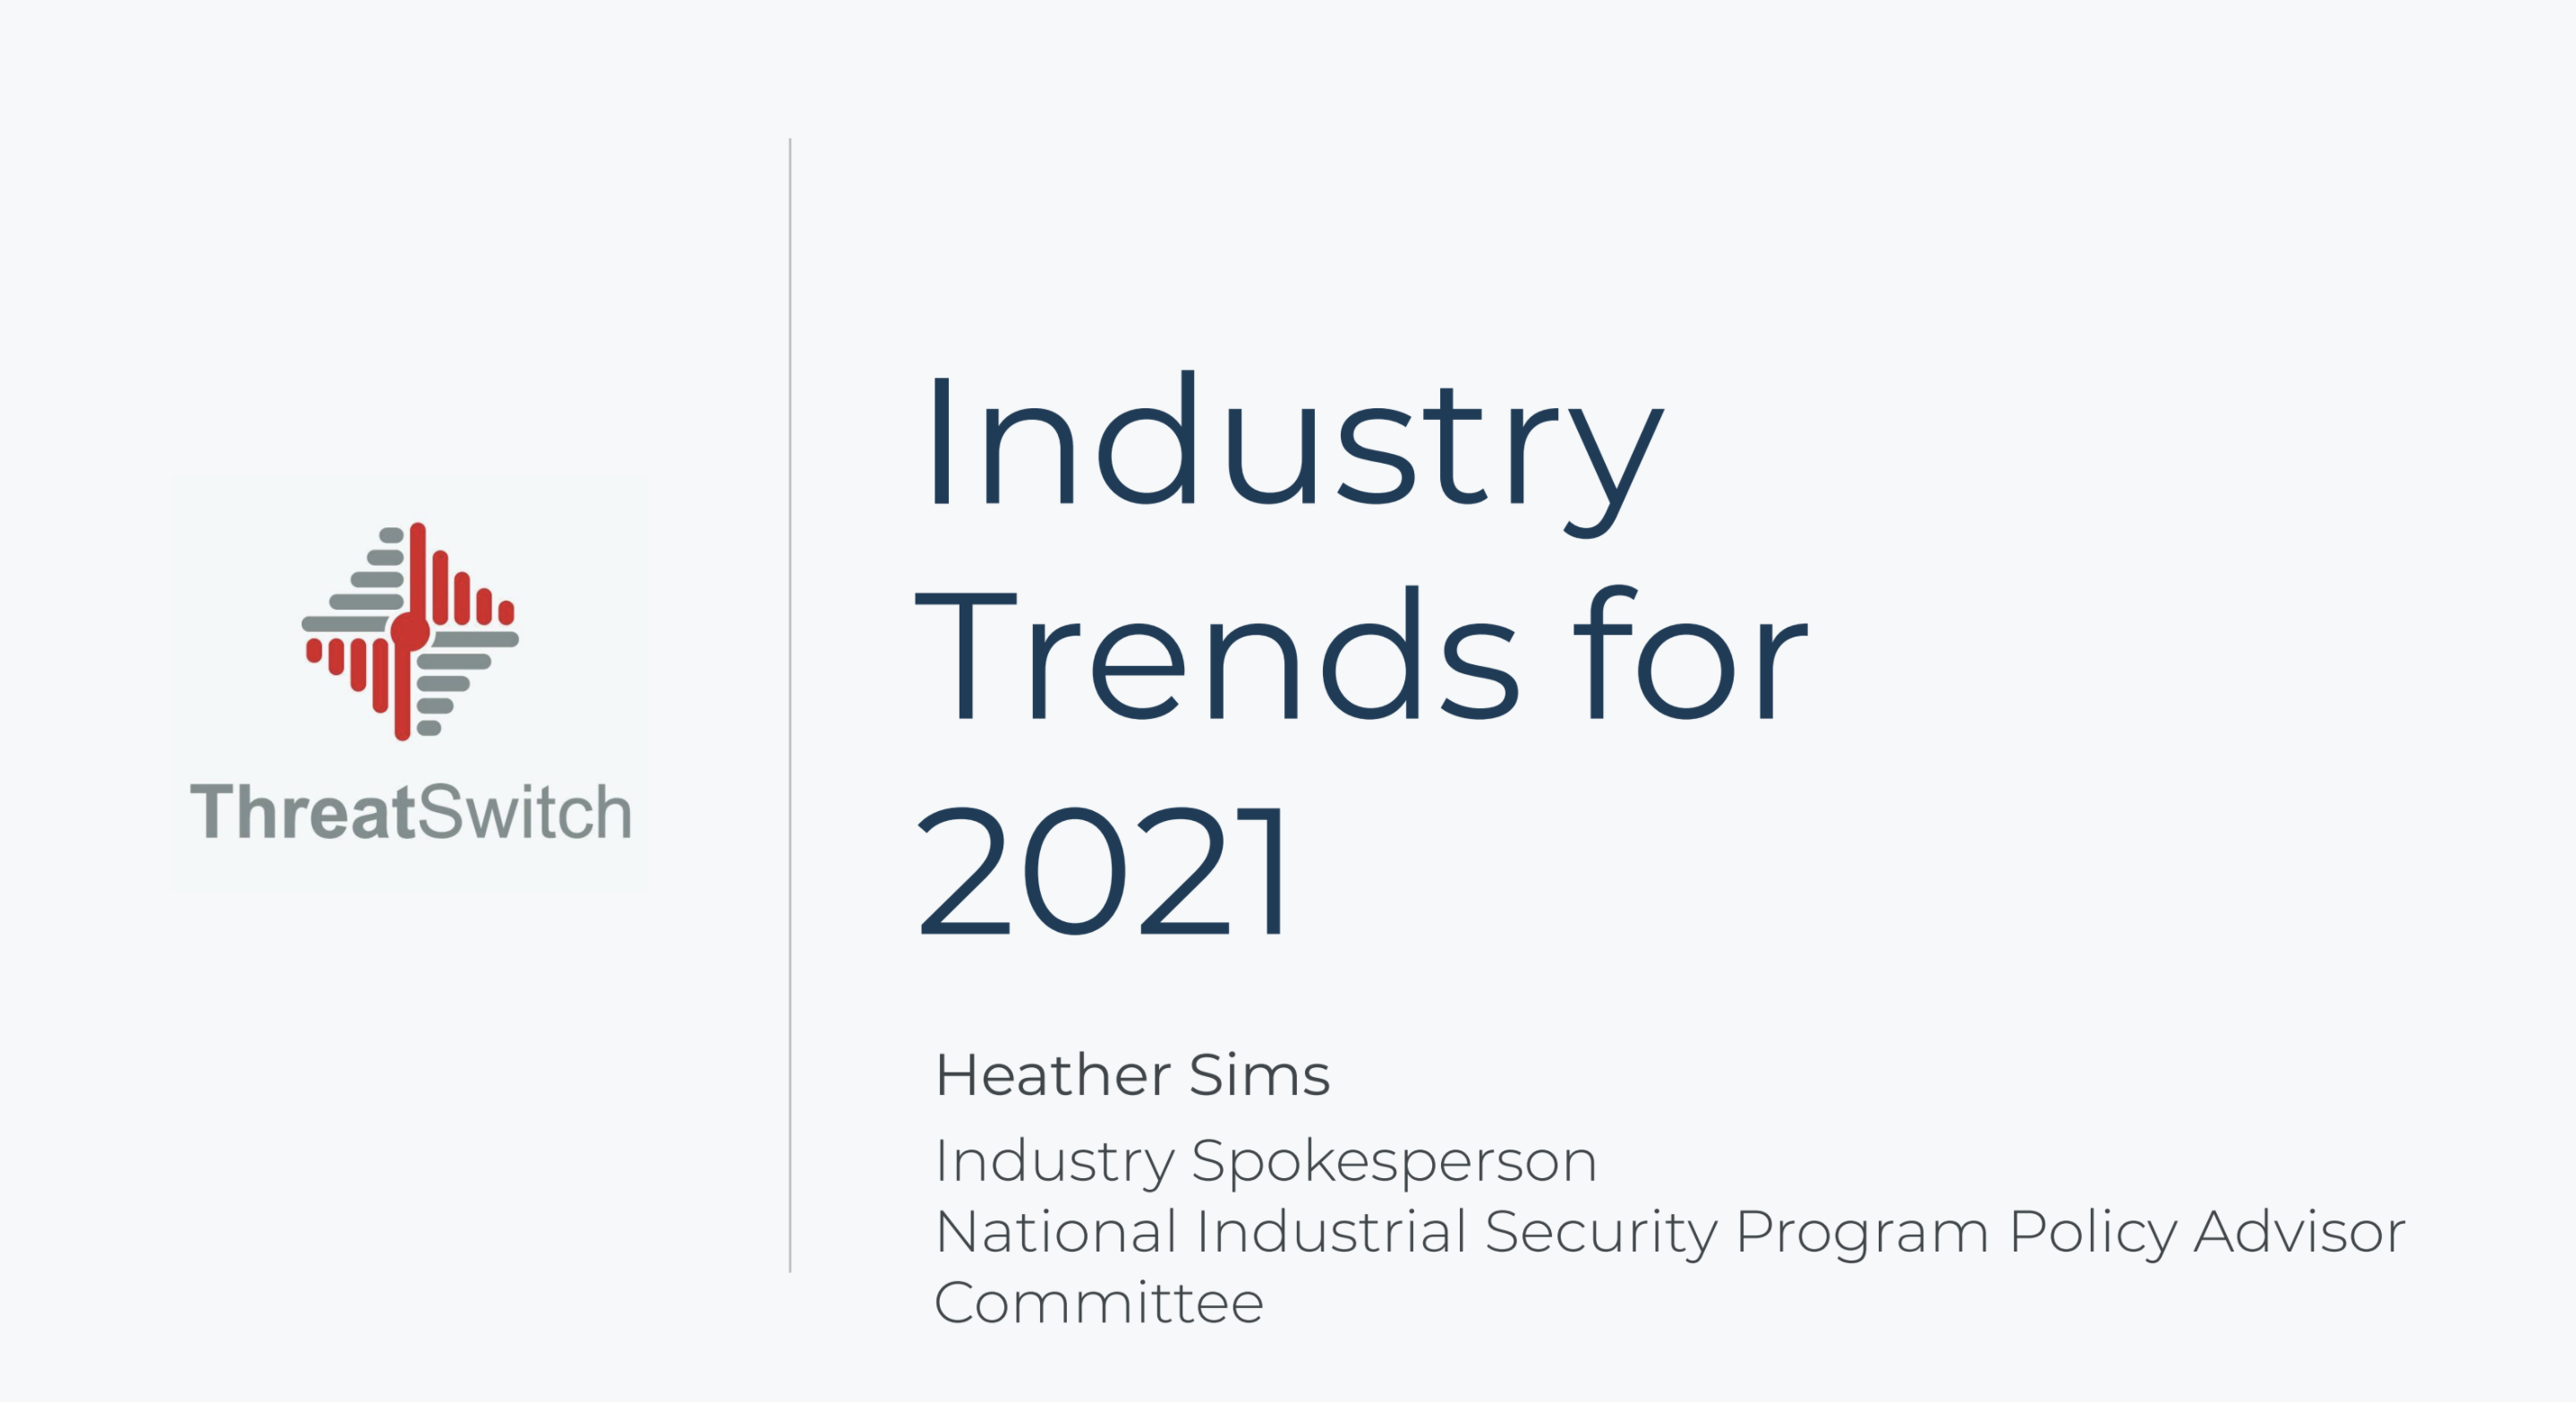 Industry Trends for 2021